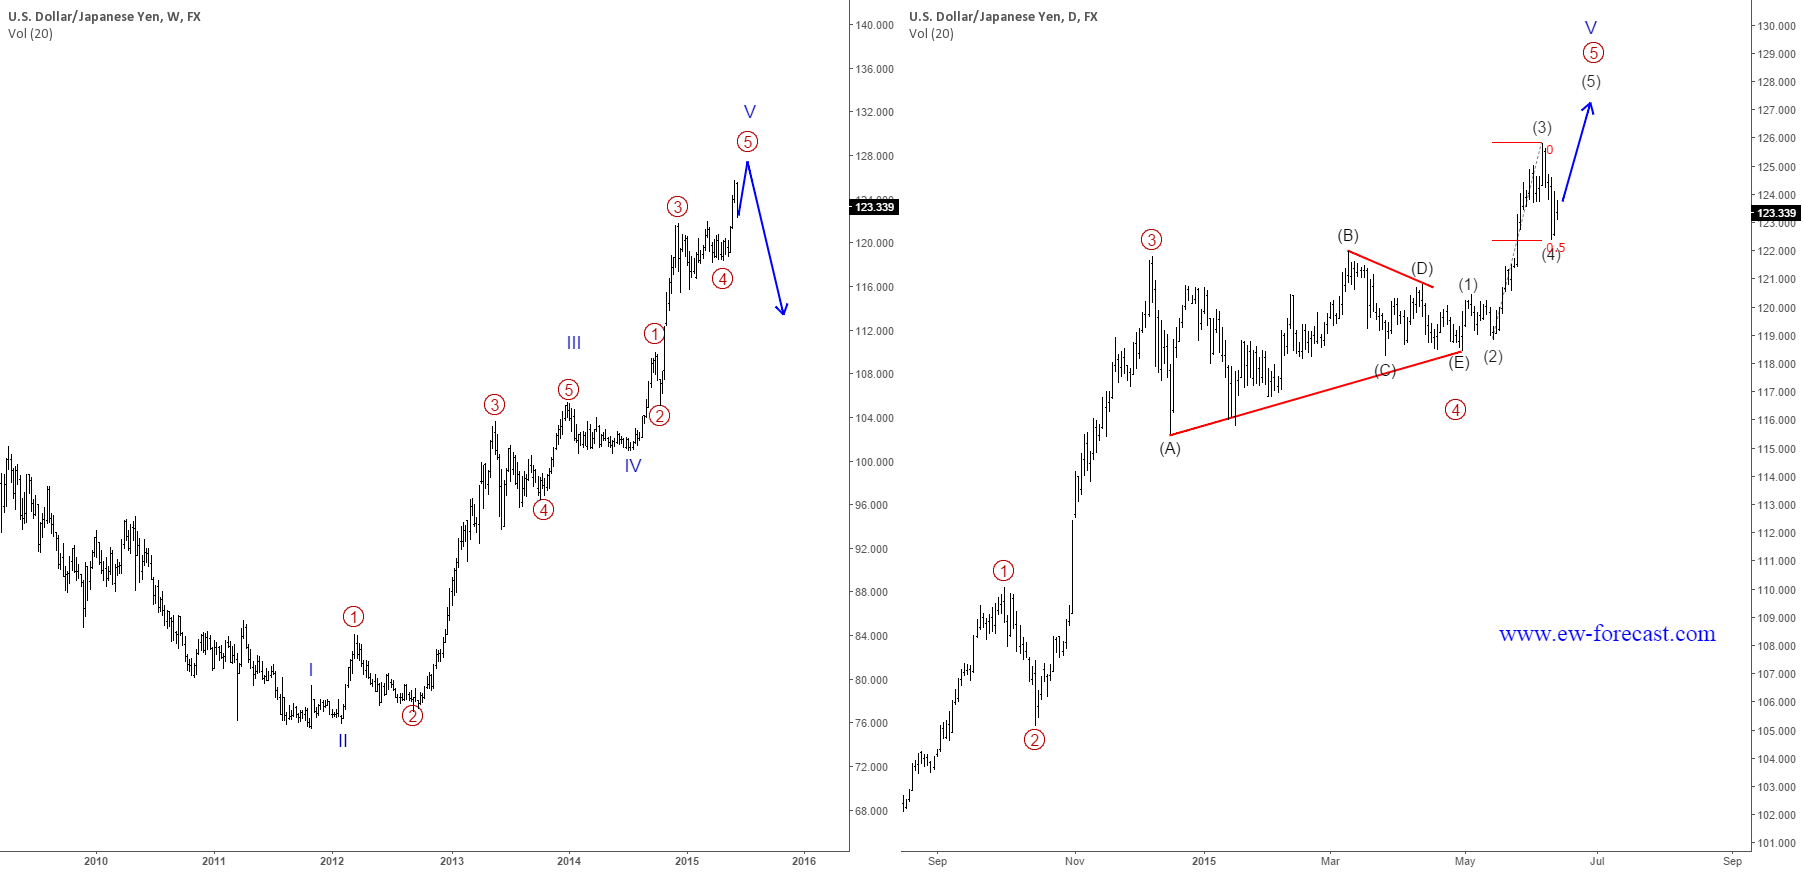 USDJPY UPDATE II : Correction unfolding